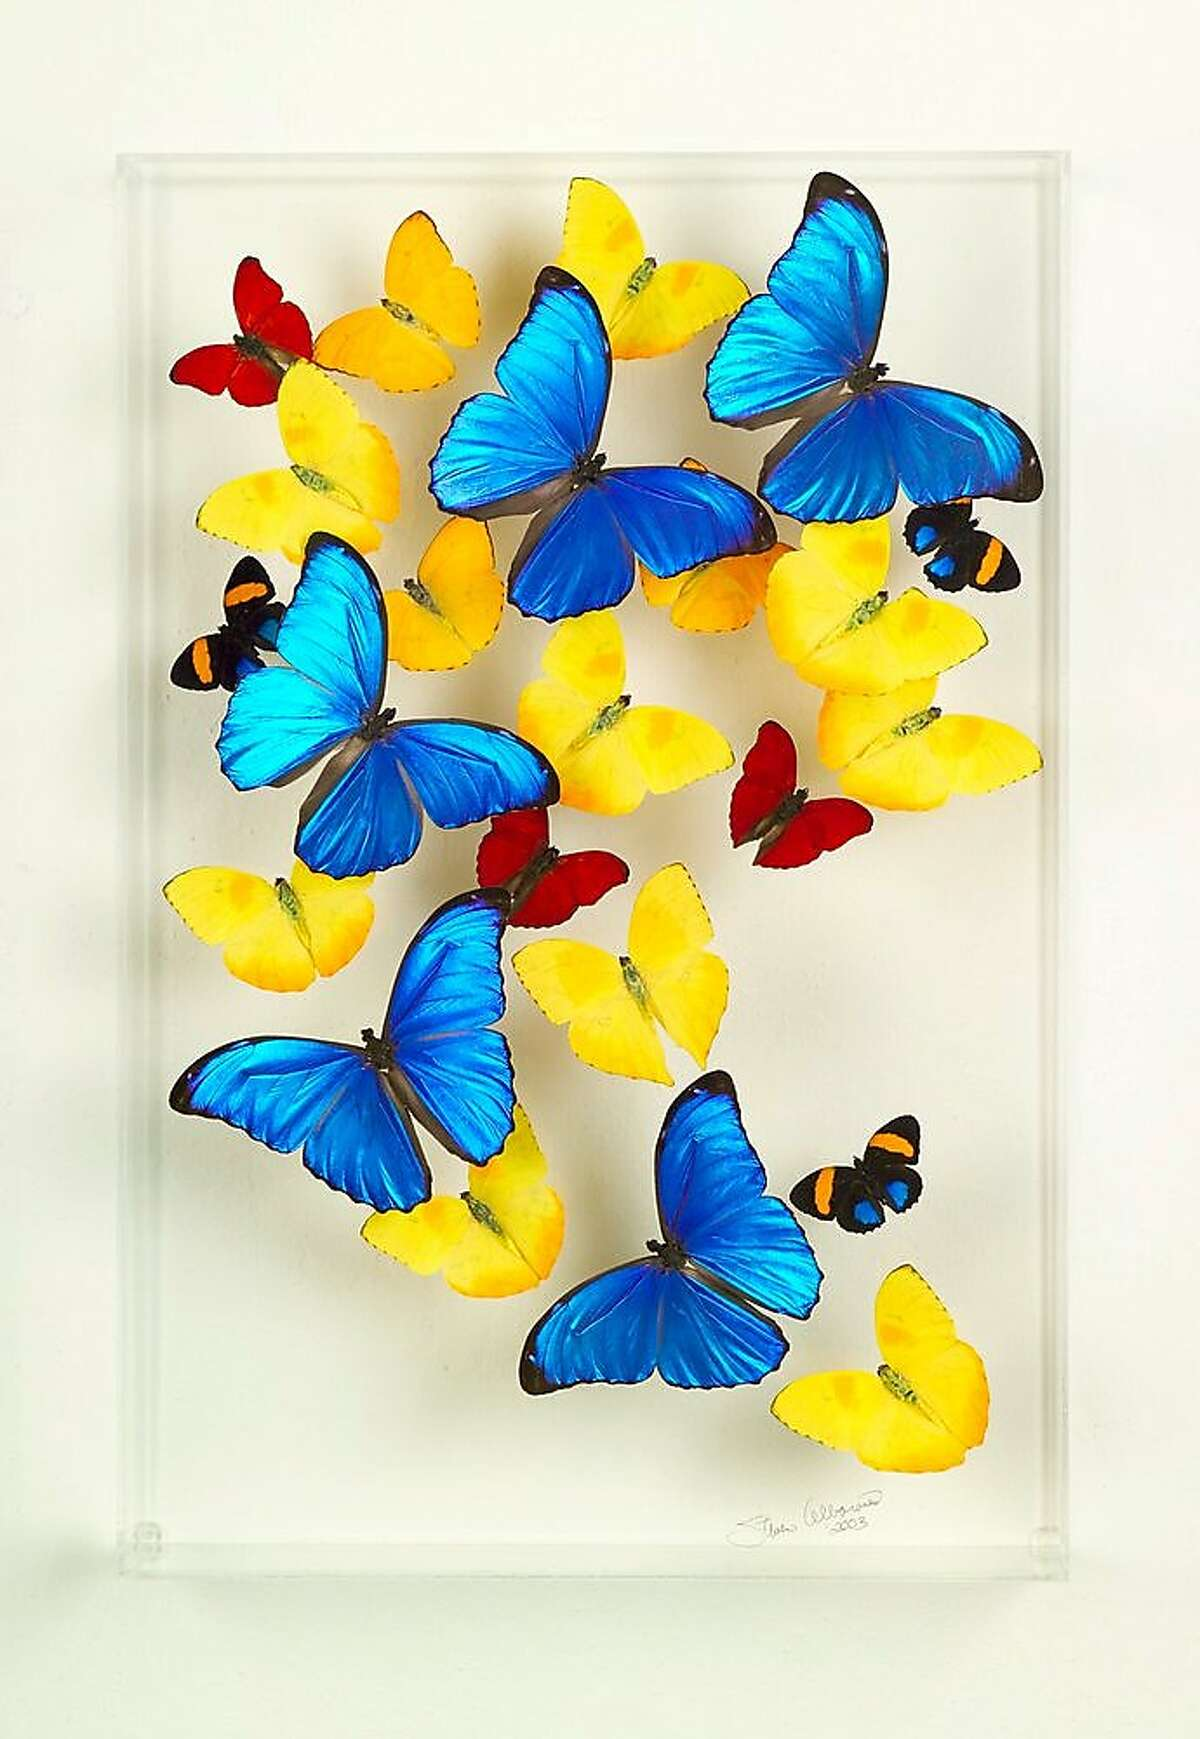 Steven Albaranes makes buttterflies enclosed in acrylic appear to be flying. He will be at the Burlingame art fair.